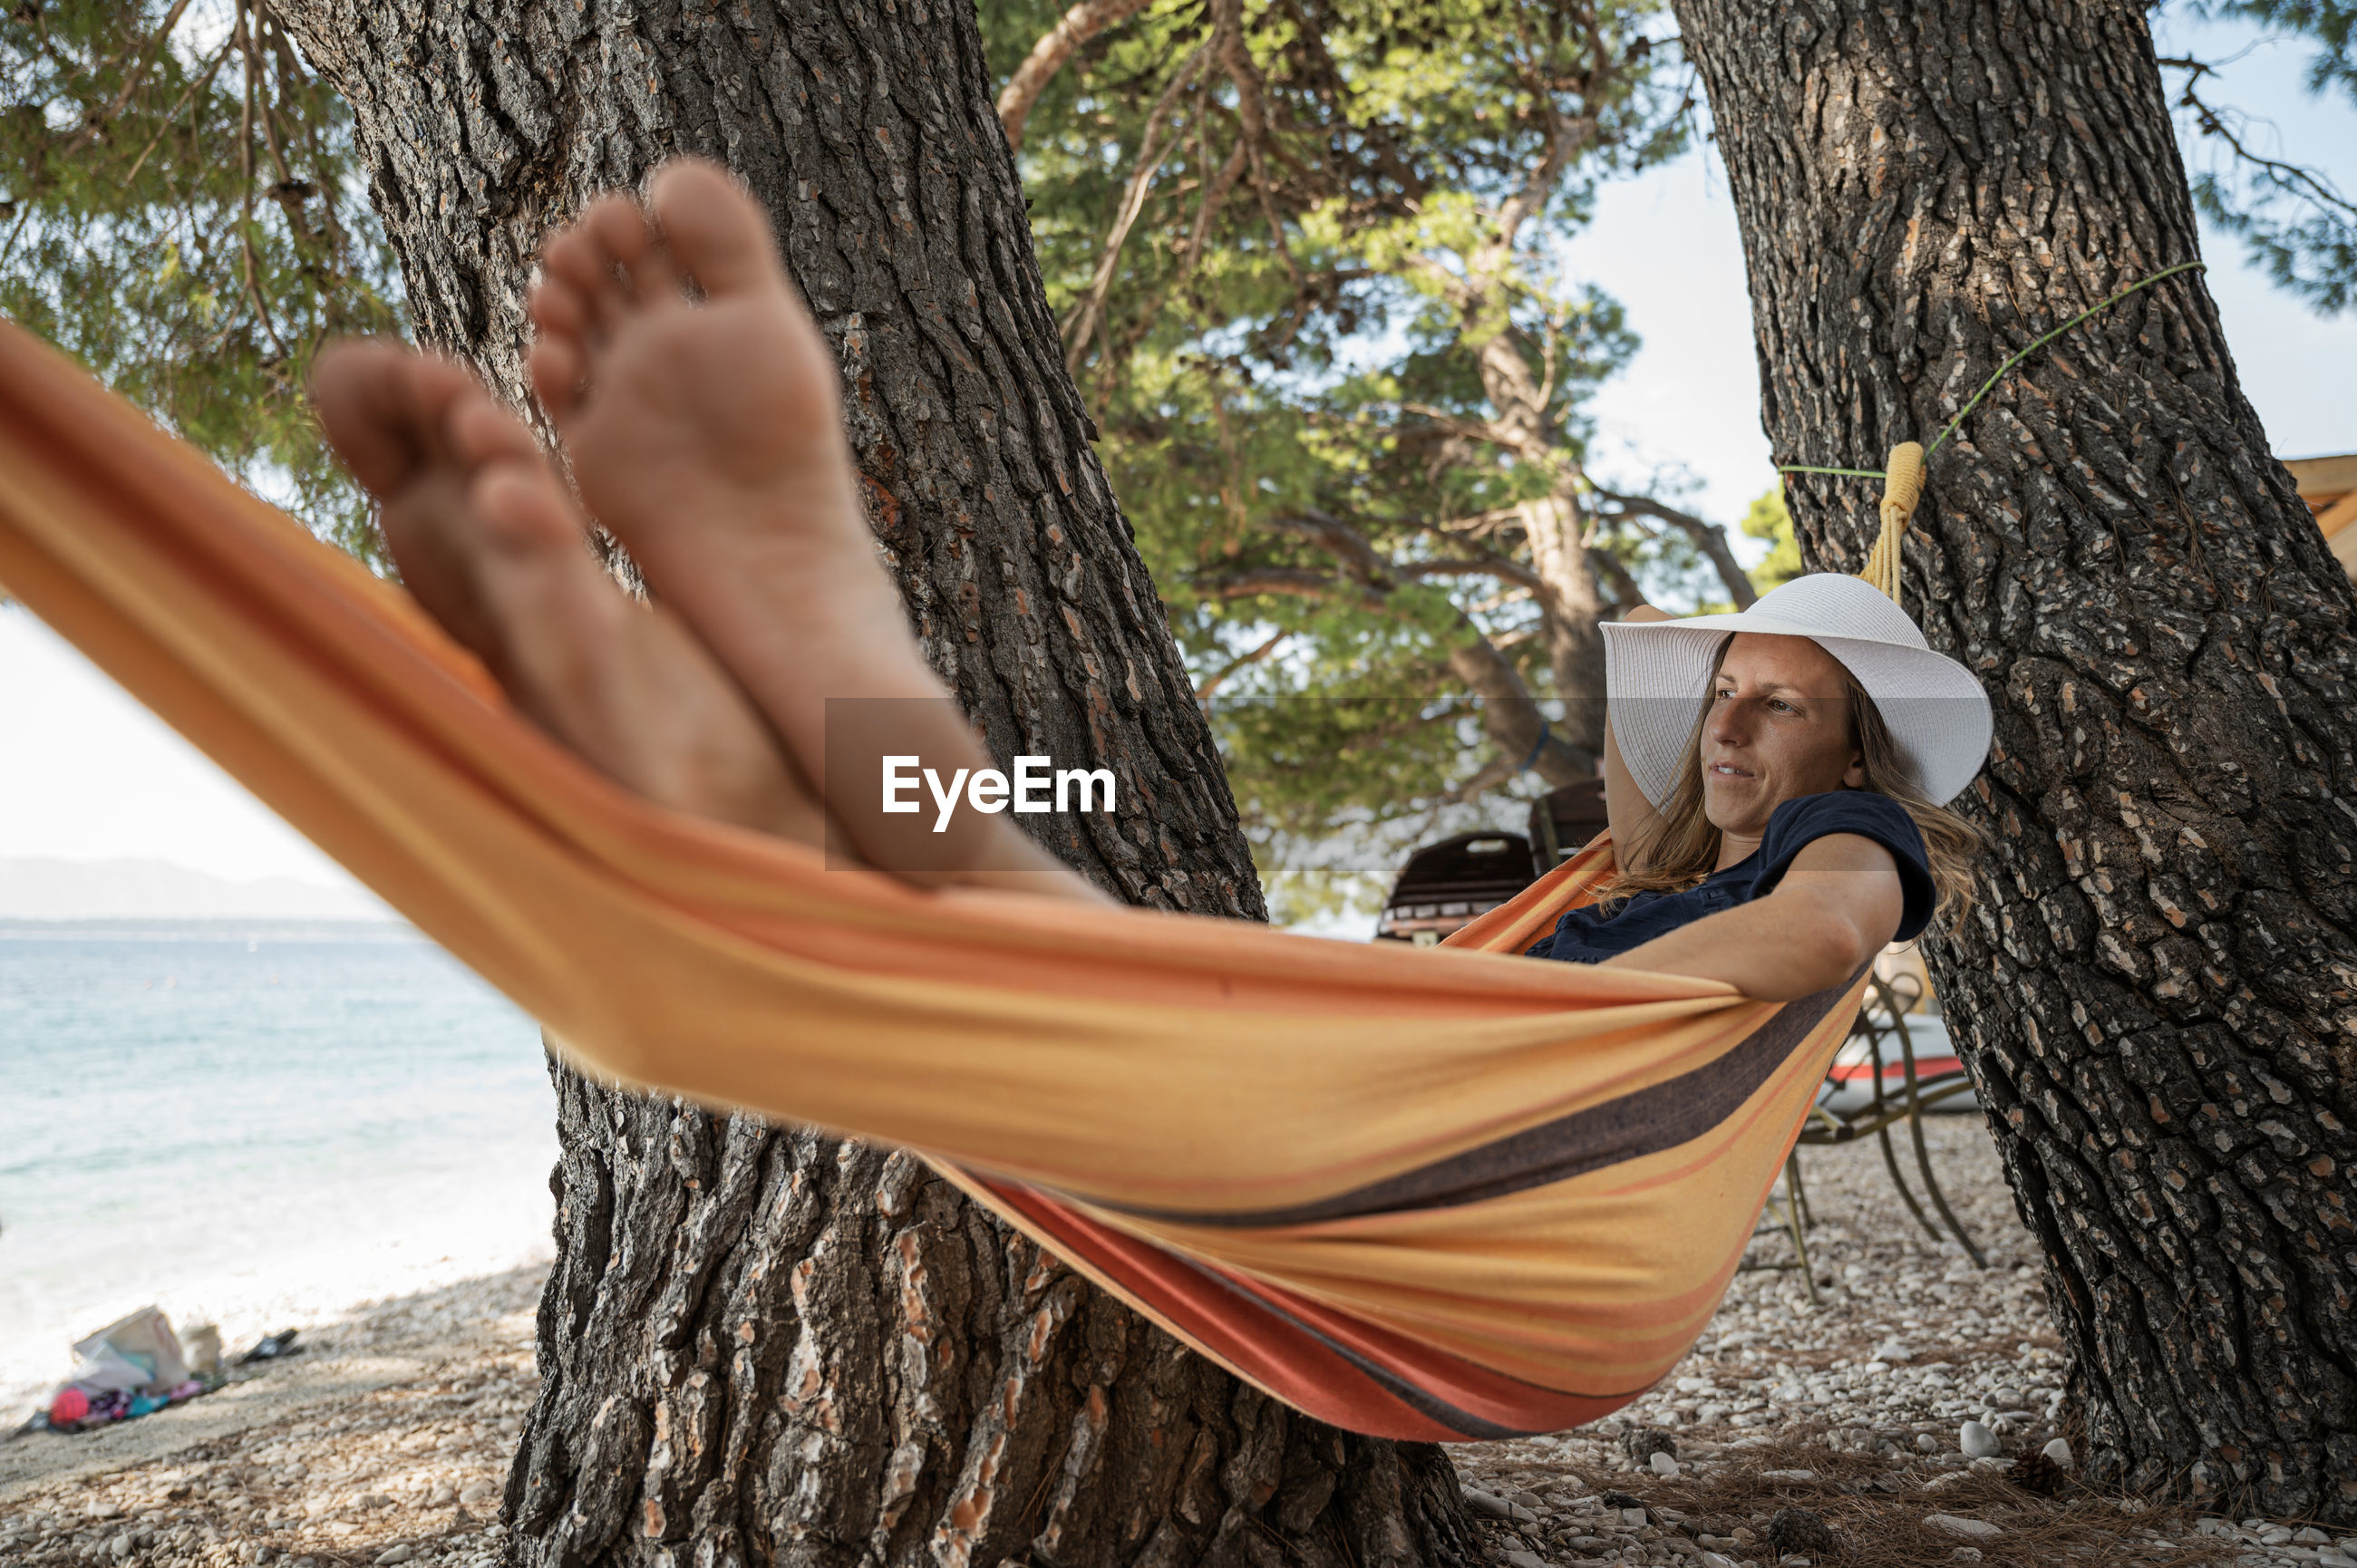 YOUNG WOMAN RELAXING ON HAMMOCK BY TREE TRUNK